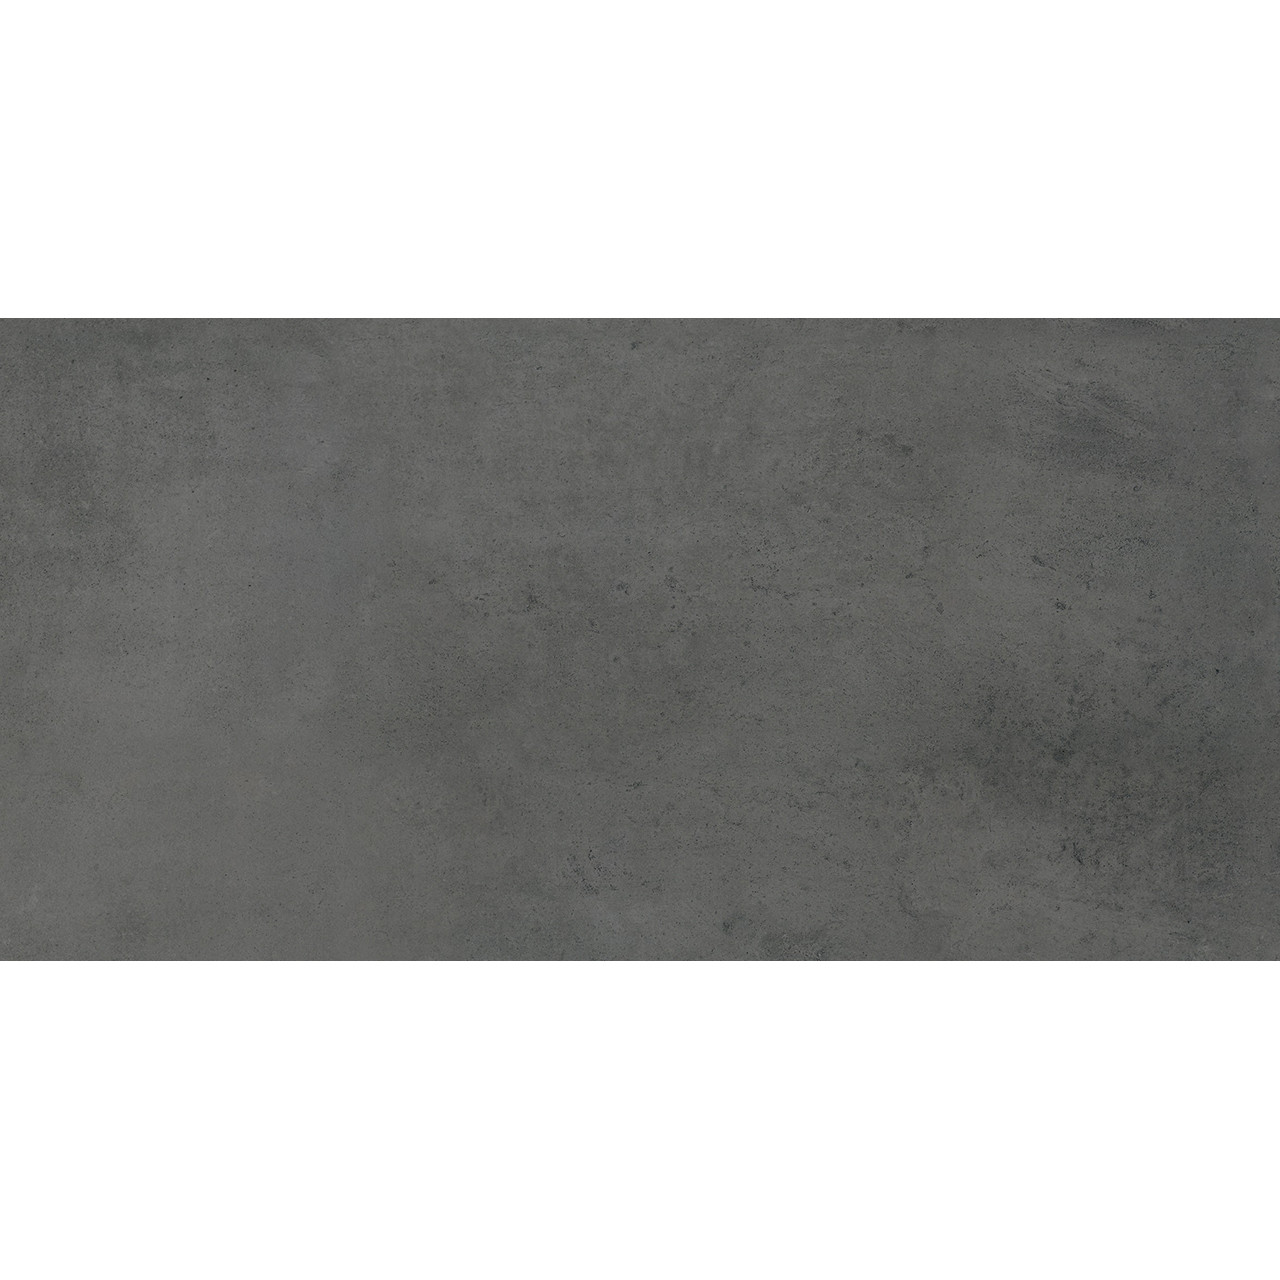 Maxima Dark Grey 31cm x 62cm Porcelain Tile